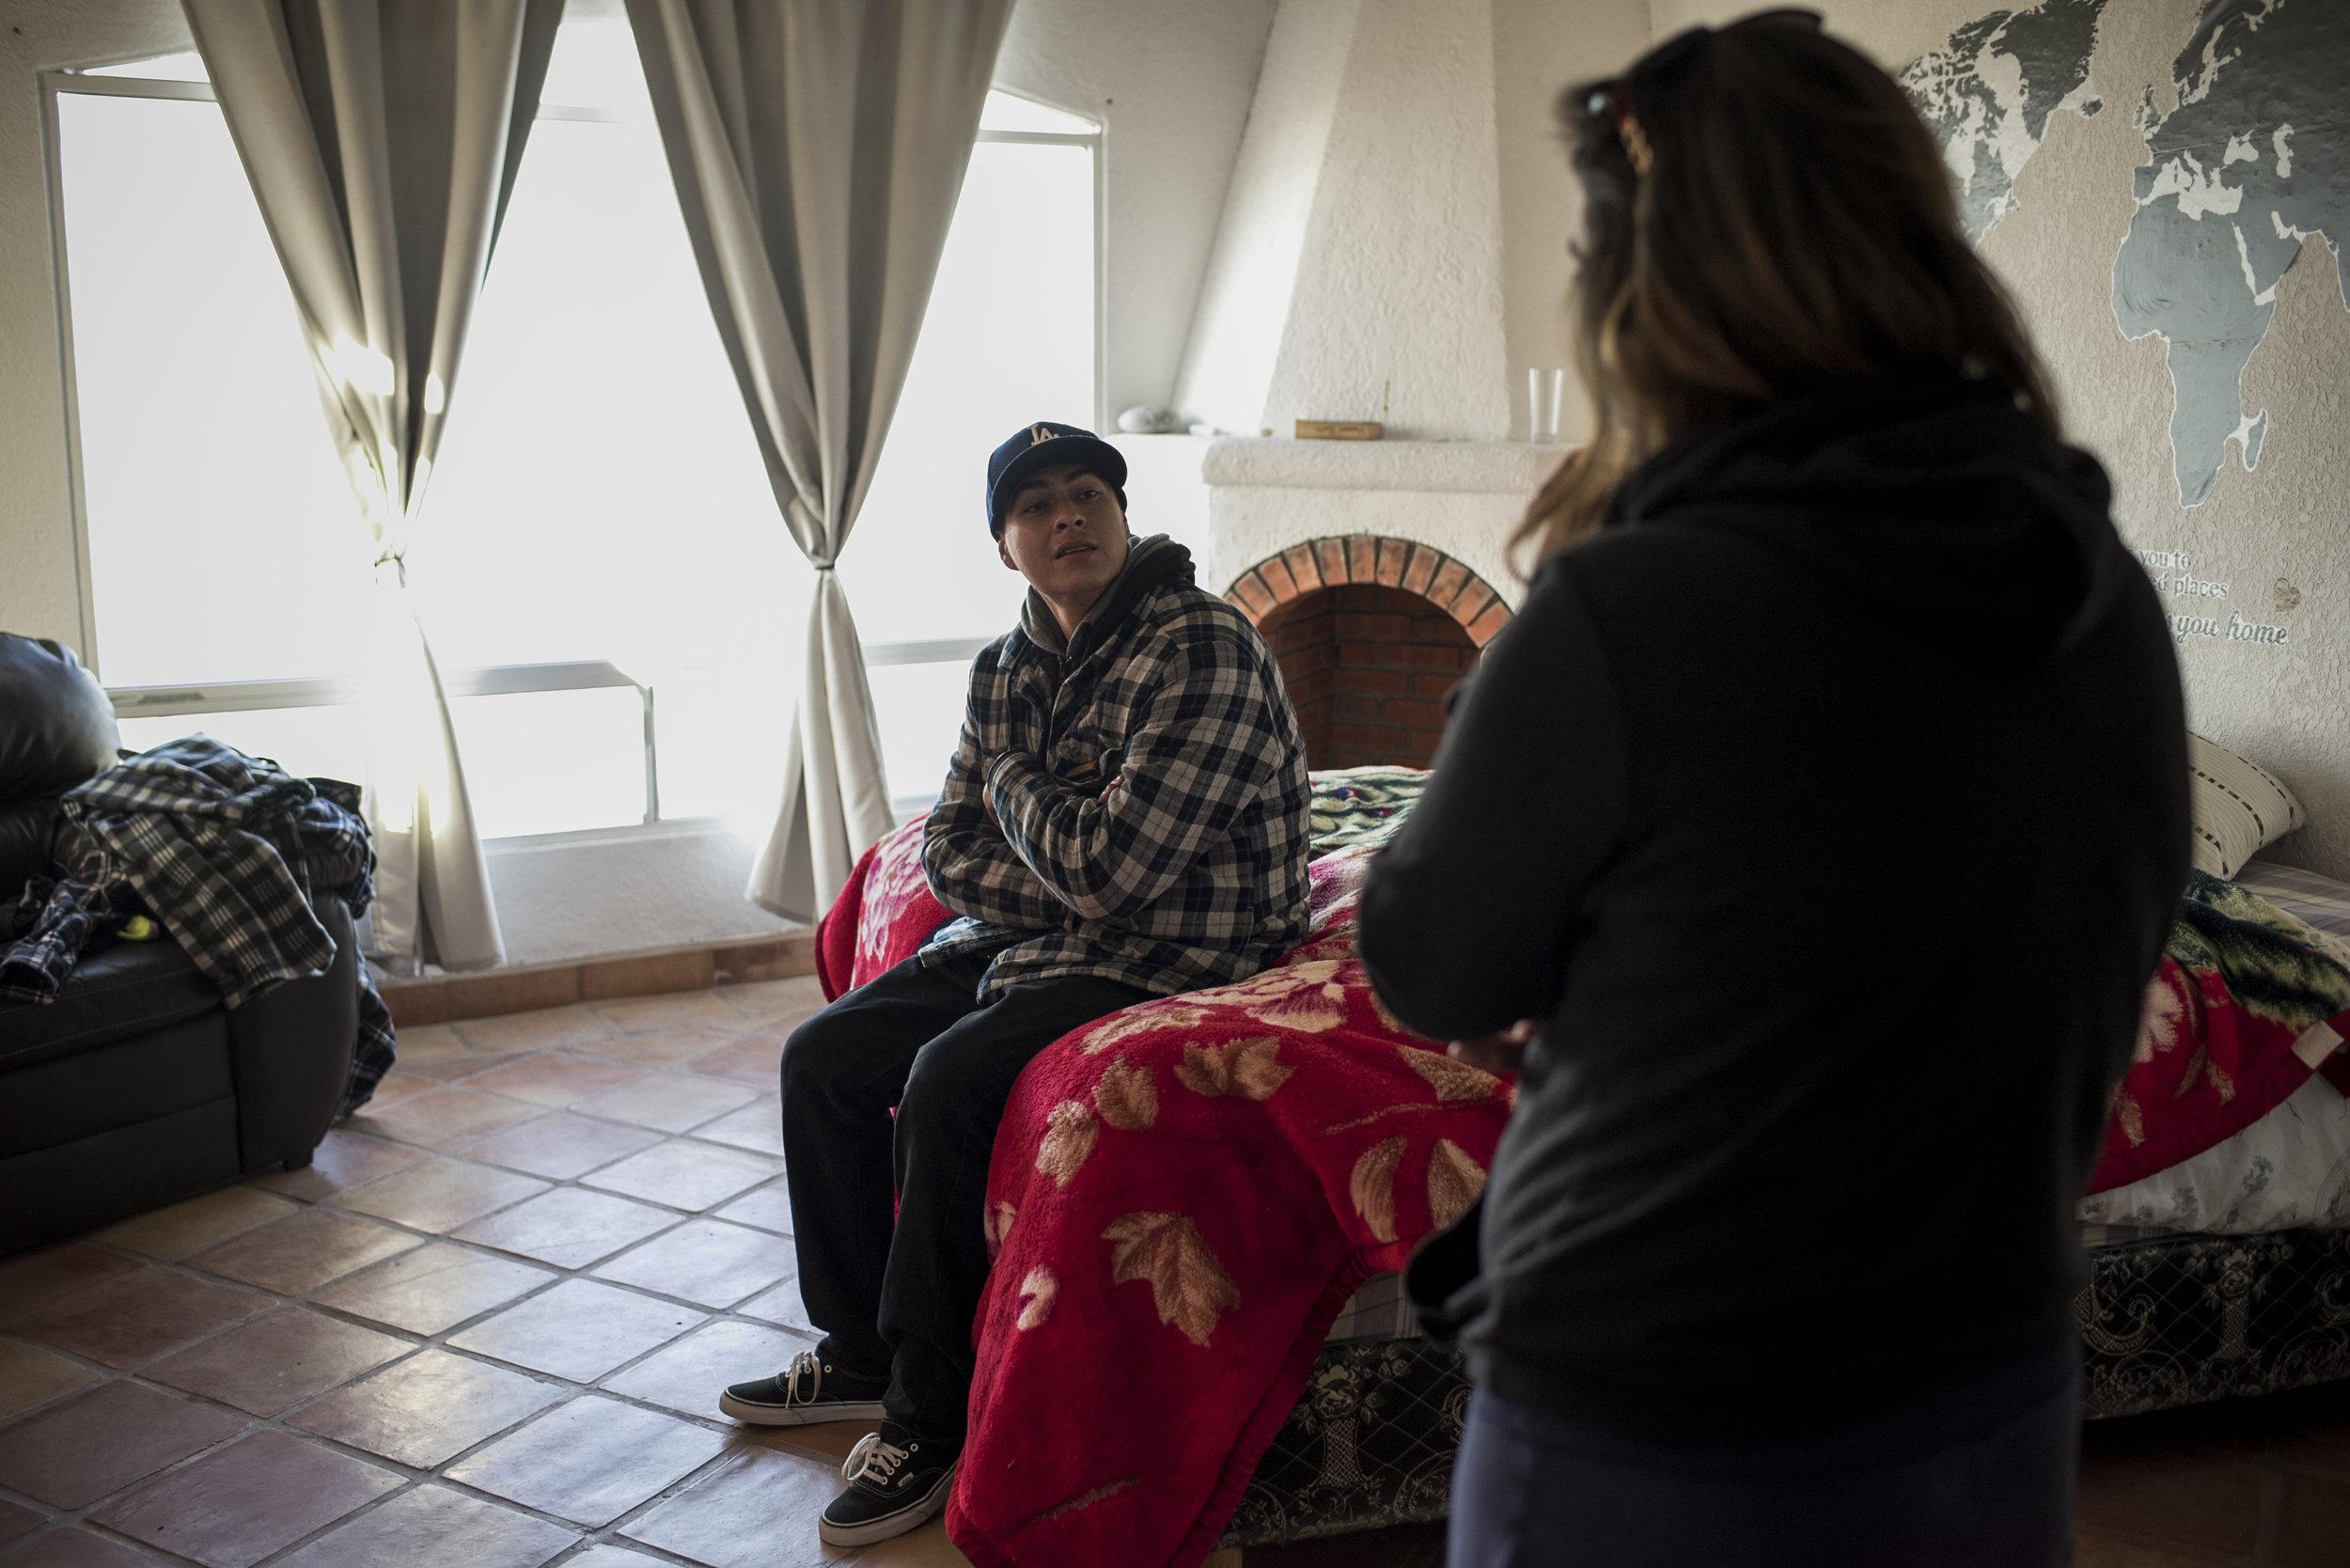 ROSARITO, MEXICO- Feb 13, 2018: A staff member at The Ibogaine Institute talks to Andrew Ortega, a heroin addict who was just treated with a pyschedelic drug called Ibogaine on February 12, 2018 in Rosarito, Mexico. Ibogaine is a psychedelic drug that is illegal in the United States but has been shown to dramatically reduce opioid withdrawals and reduce long term addiction.(Jonathan Levinson for The World)